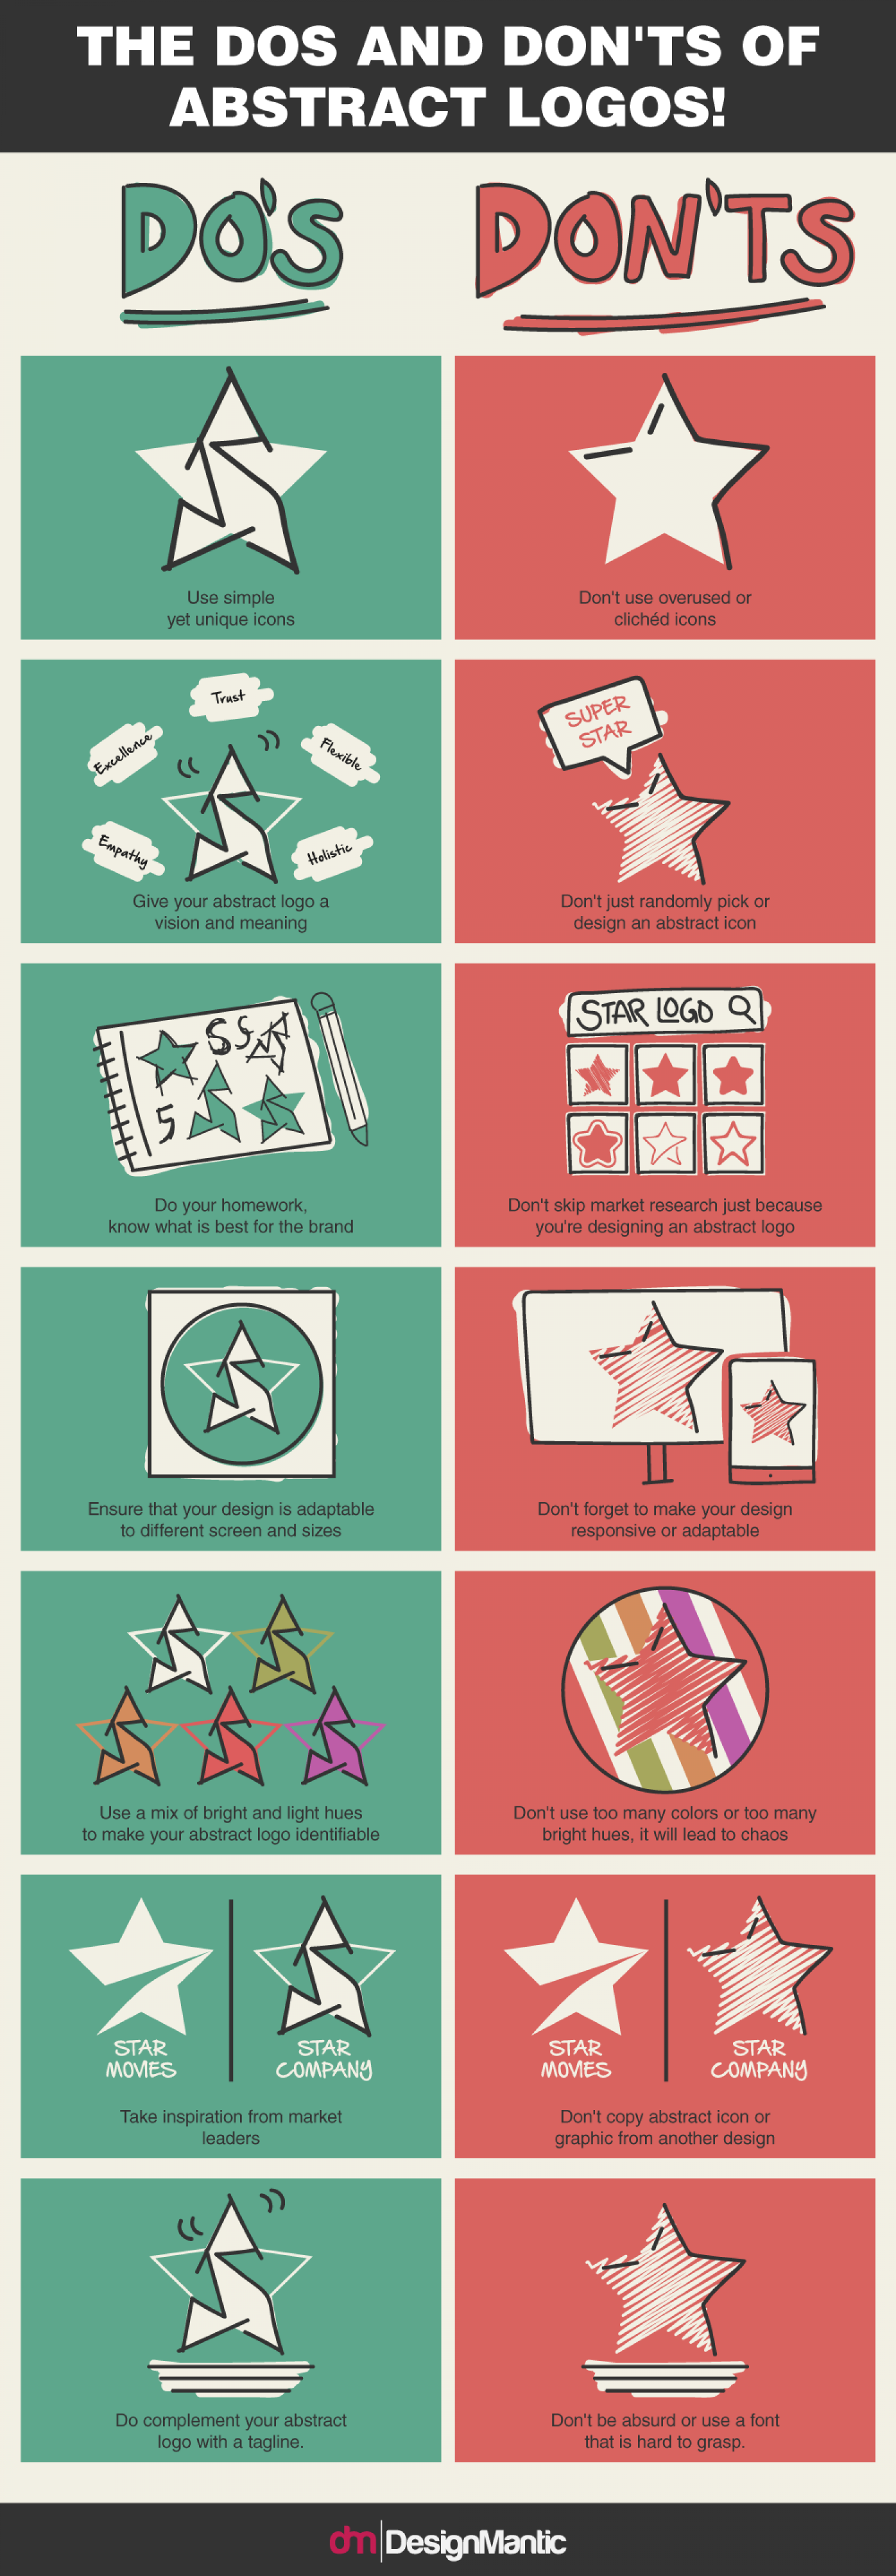 The Dos and Donts of Abstract Logos! Infographic